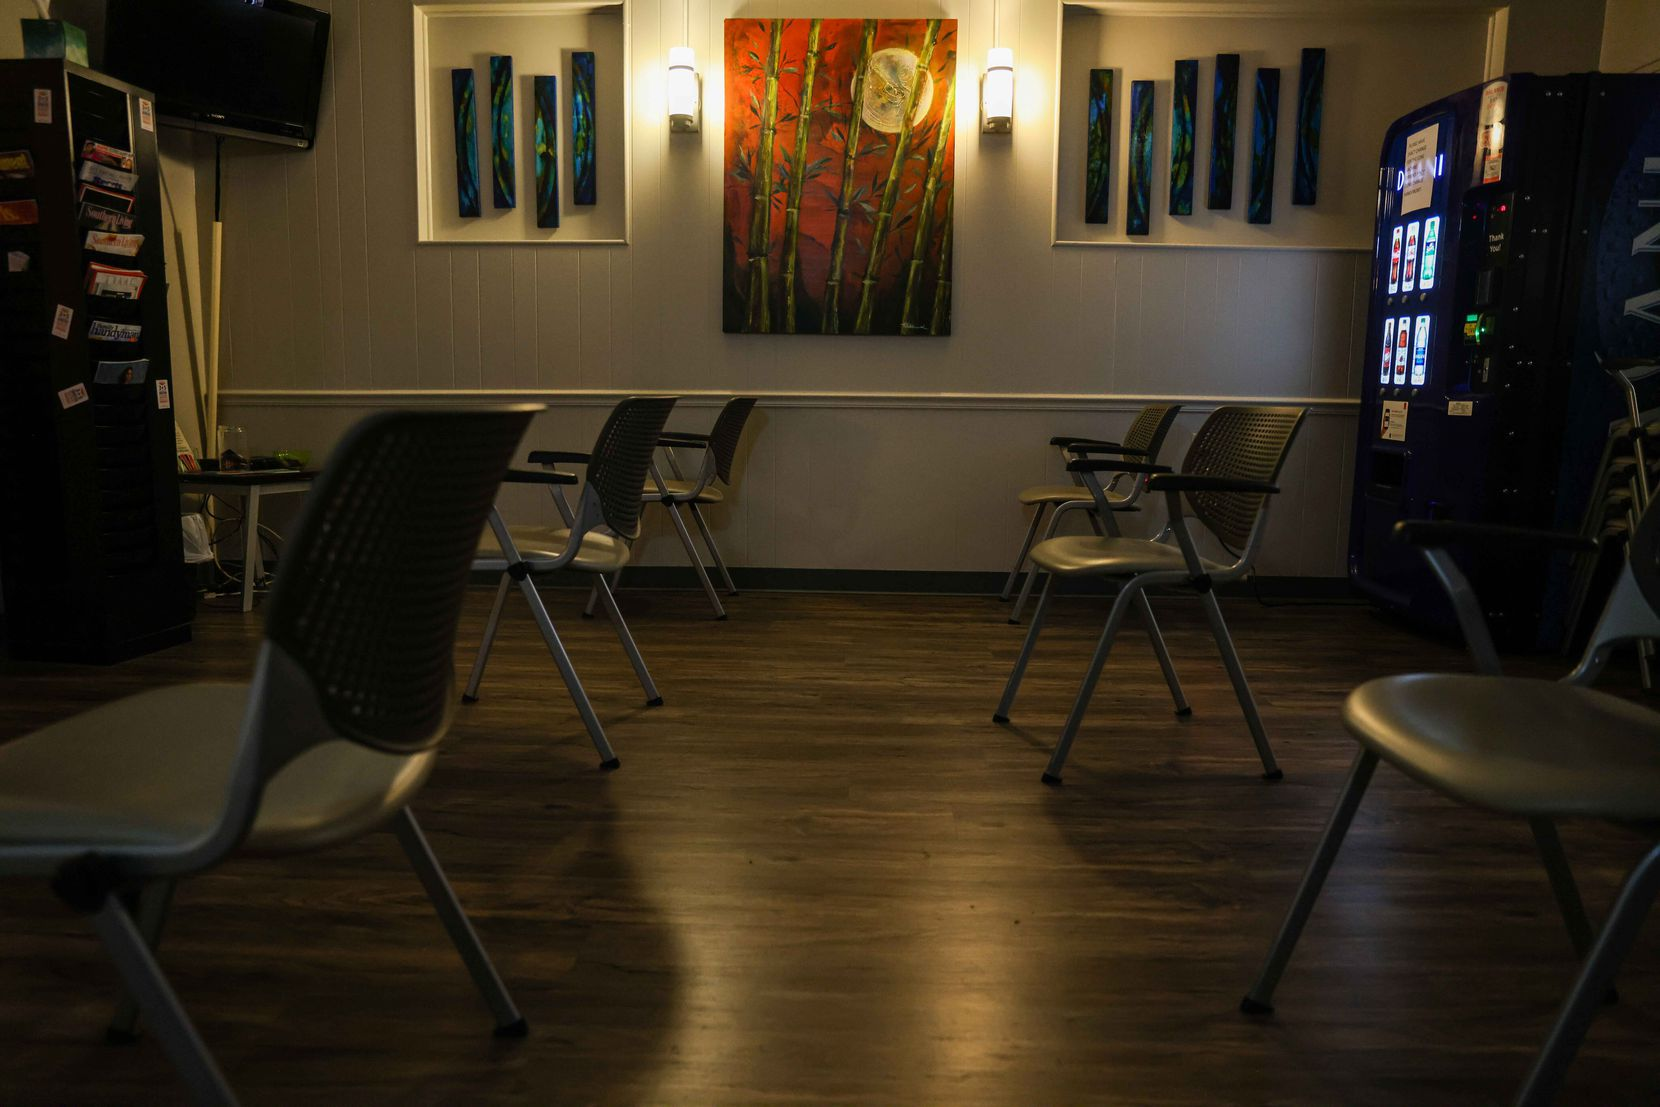 Waiting area before procedures and counseling appointments at Hope Medical Group for Women in Shreveport, La., on Tuesday, September 28, 2021. The clinic offers its services to pregnant women seeking abortions, including women from Texas.